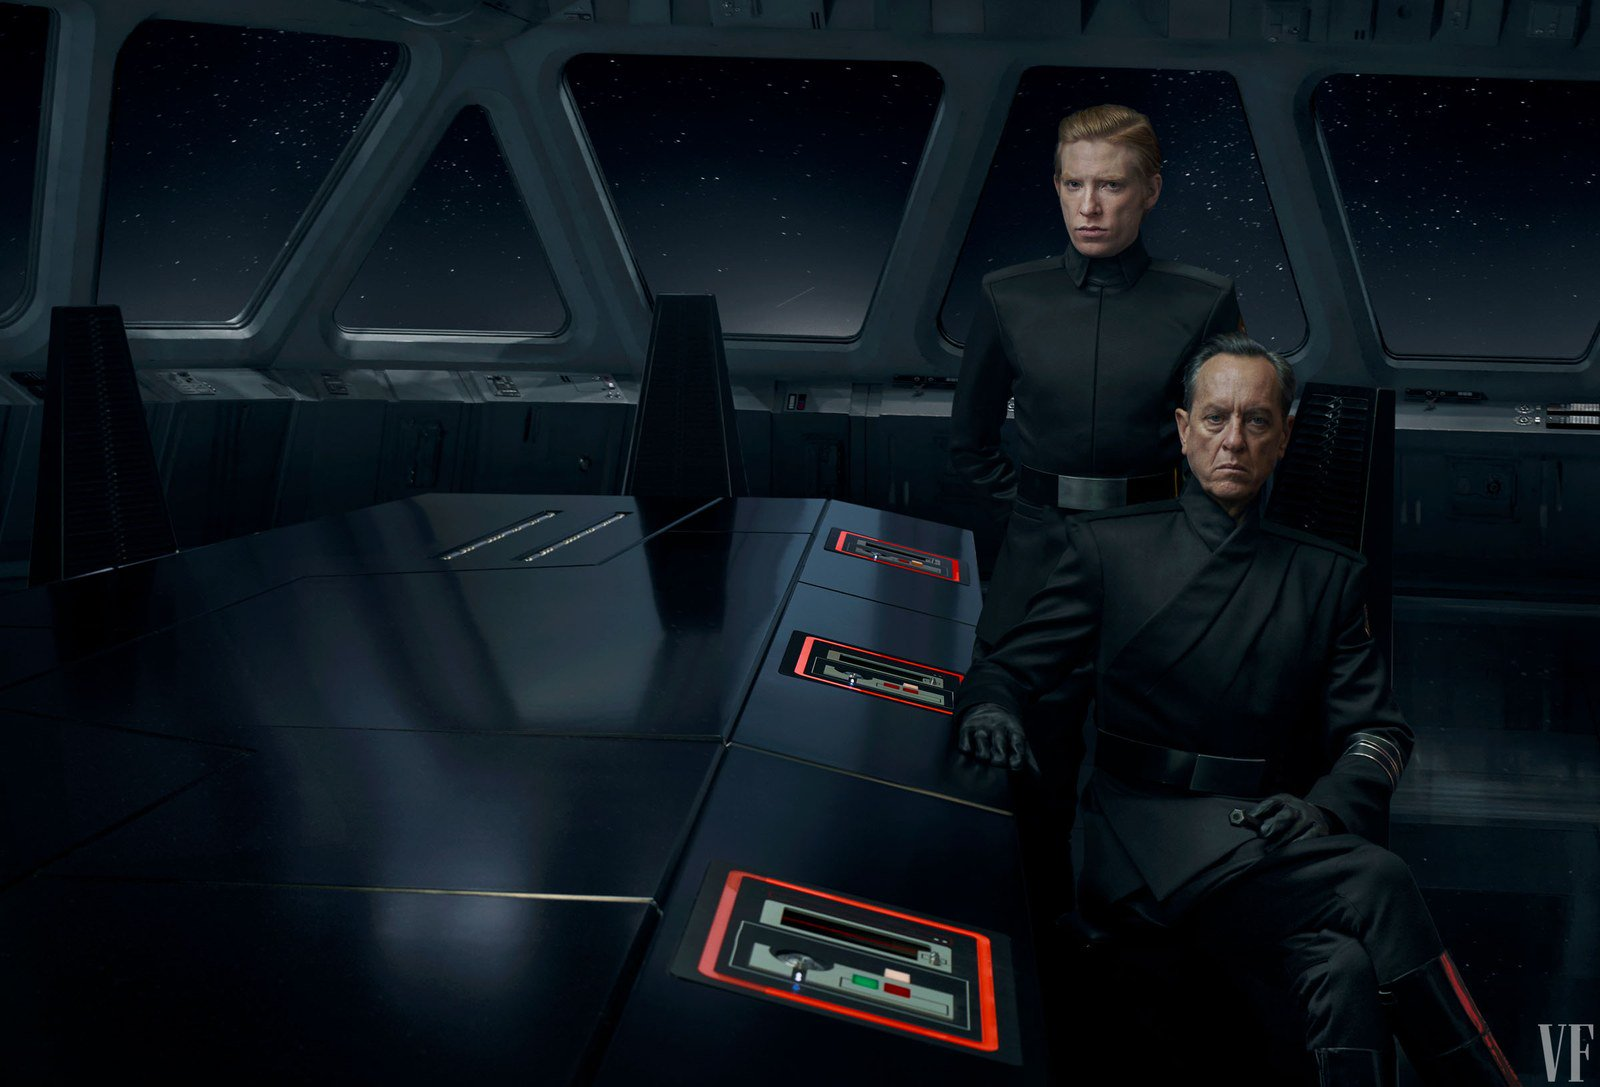 Star Wars: The Rise of Skywalker Richard E. Grant